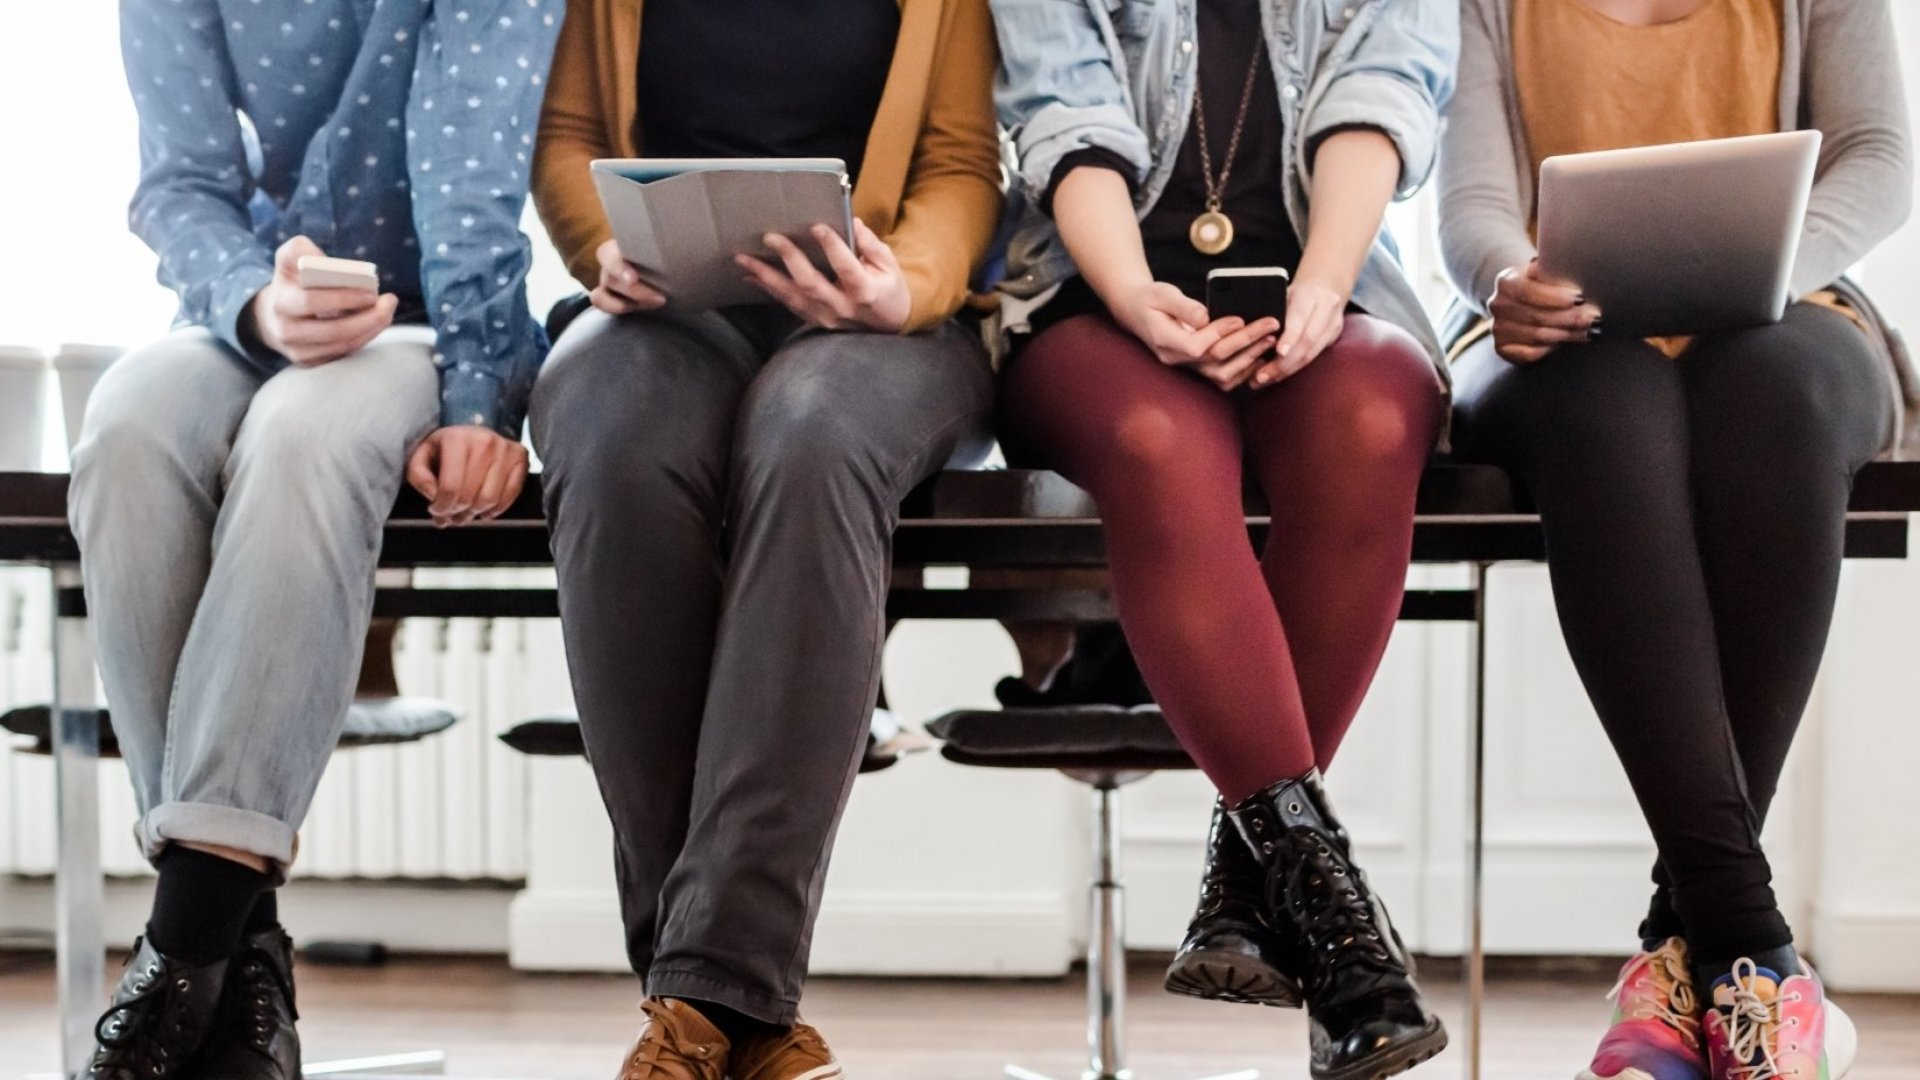 The 5 Biggest Career Mistakes Made by Millennials